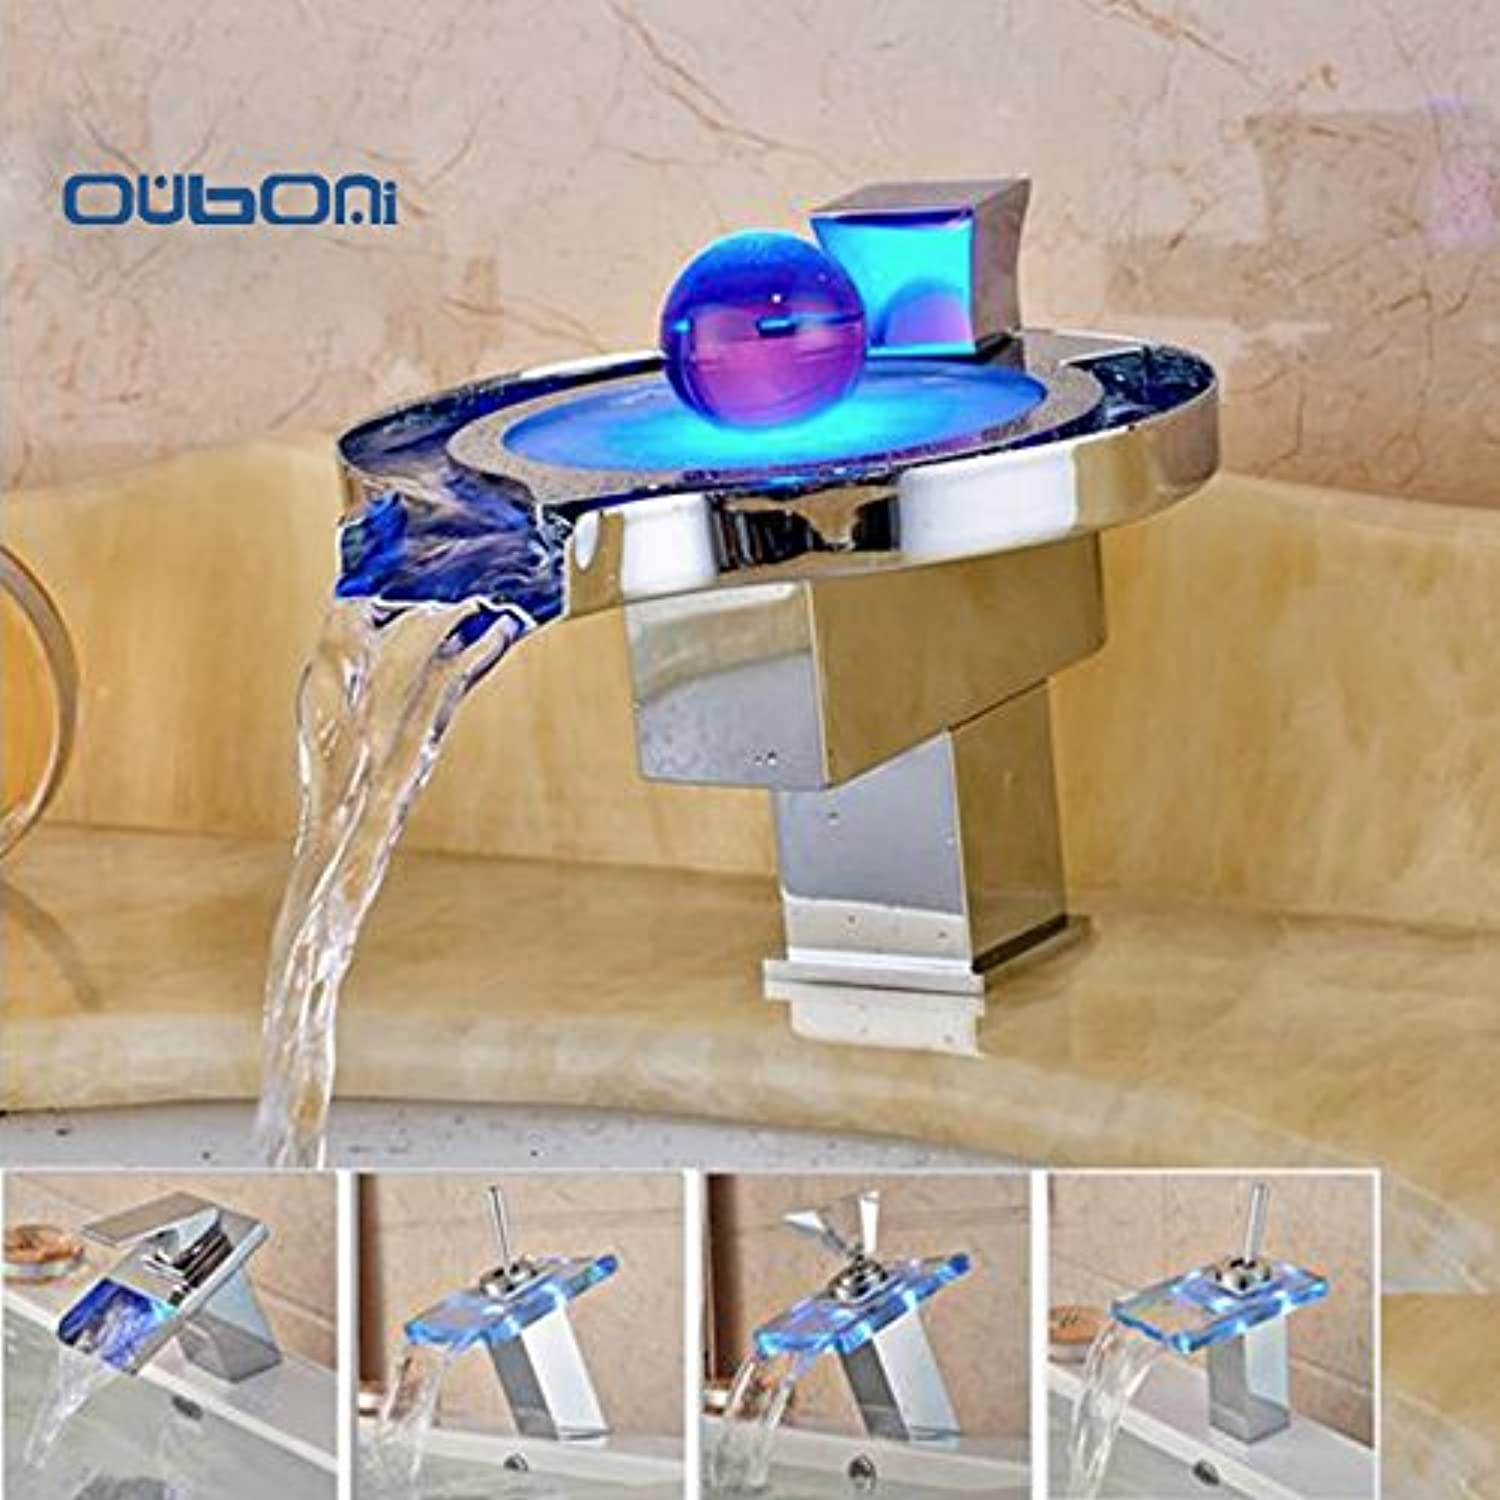 Retro Deluxe Fauceting Fashion New Deck Mounted LED Waterfall Basin Faucet Single Handle Vessel Tap Chrome Finished ,g